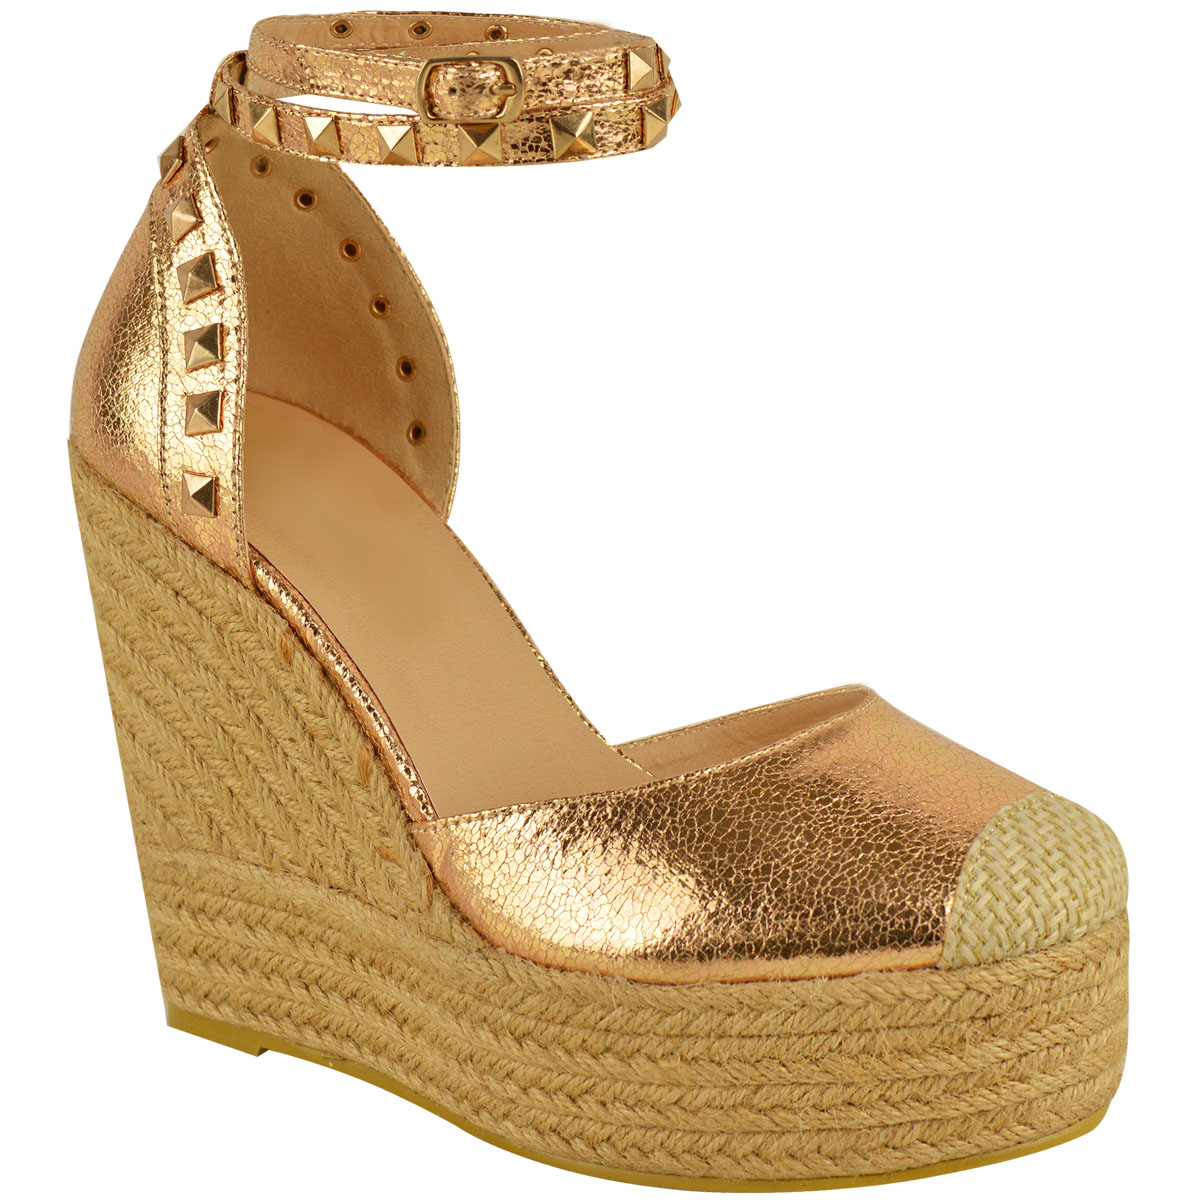 New-Womens-Stud-Espadrille-Wedge-Summer-Sandal-Ladies-Rose-Gold-Party-Shoes-Size thumbnail 22